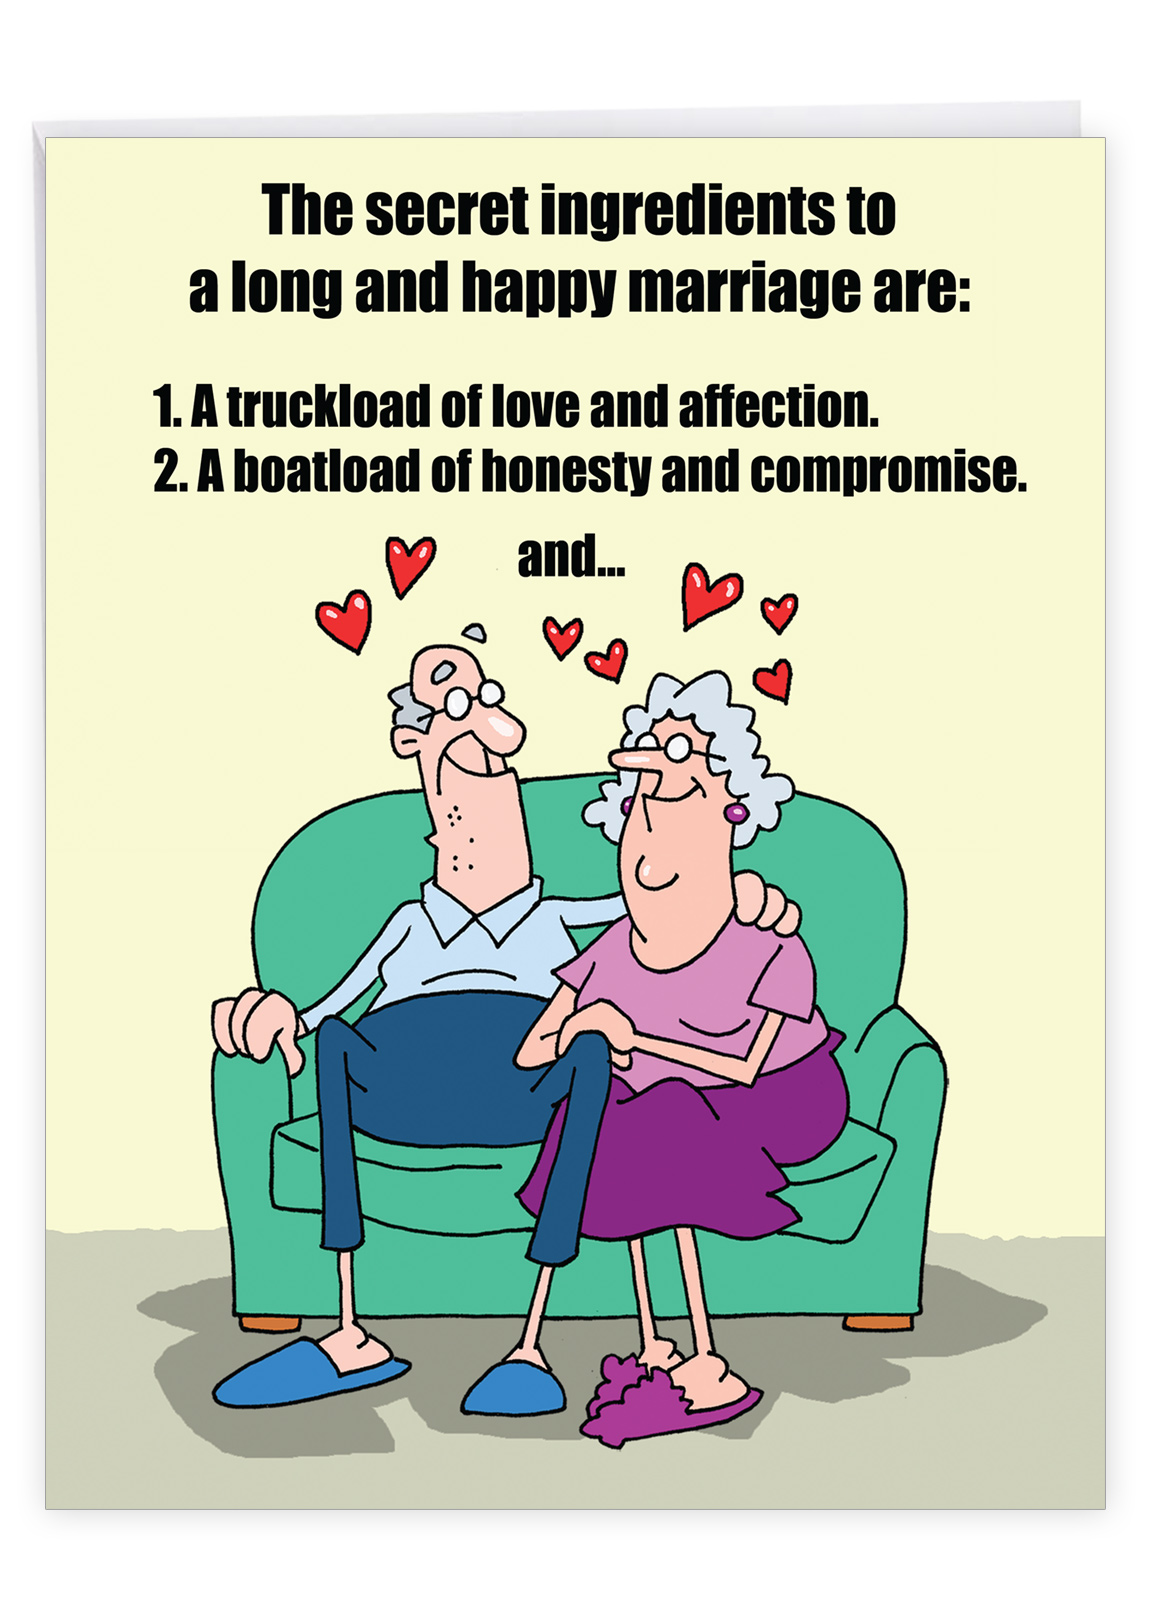 J9780 Jumbo Funny Anniversary Card Marriage Secrets With